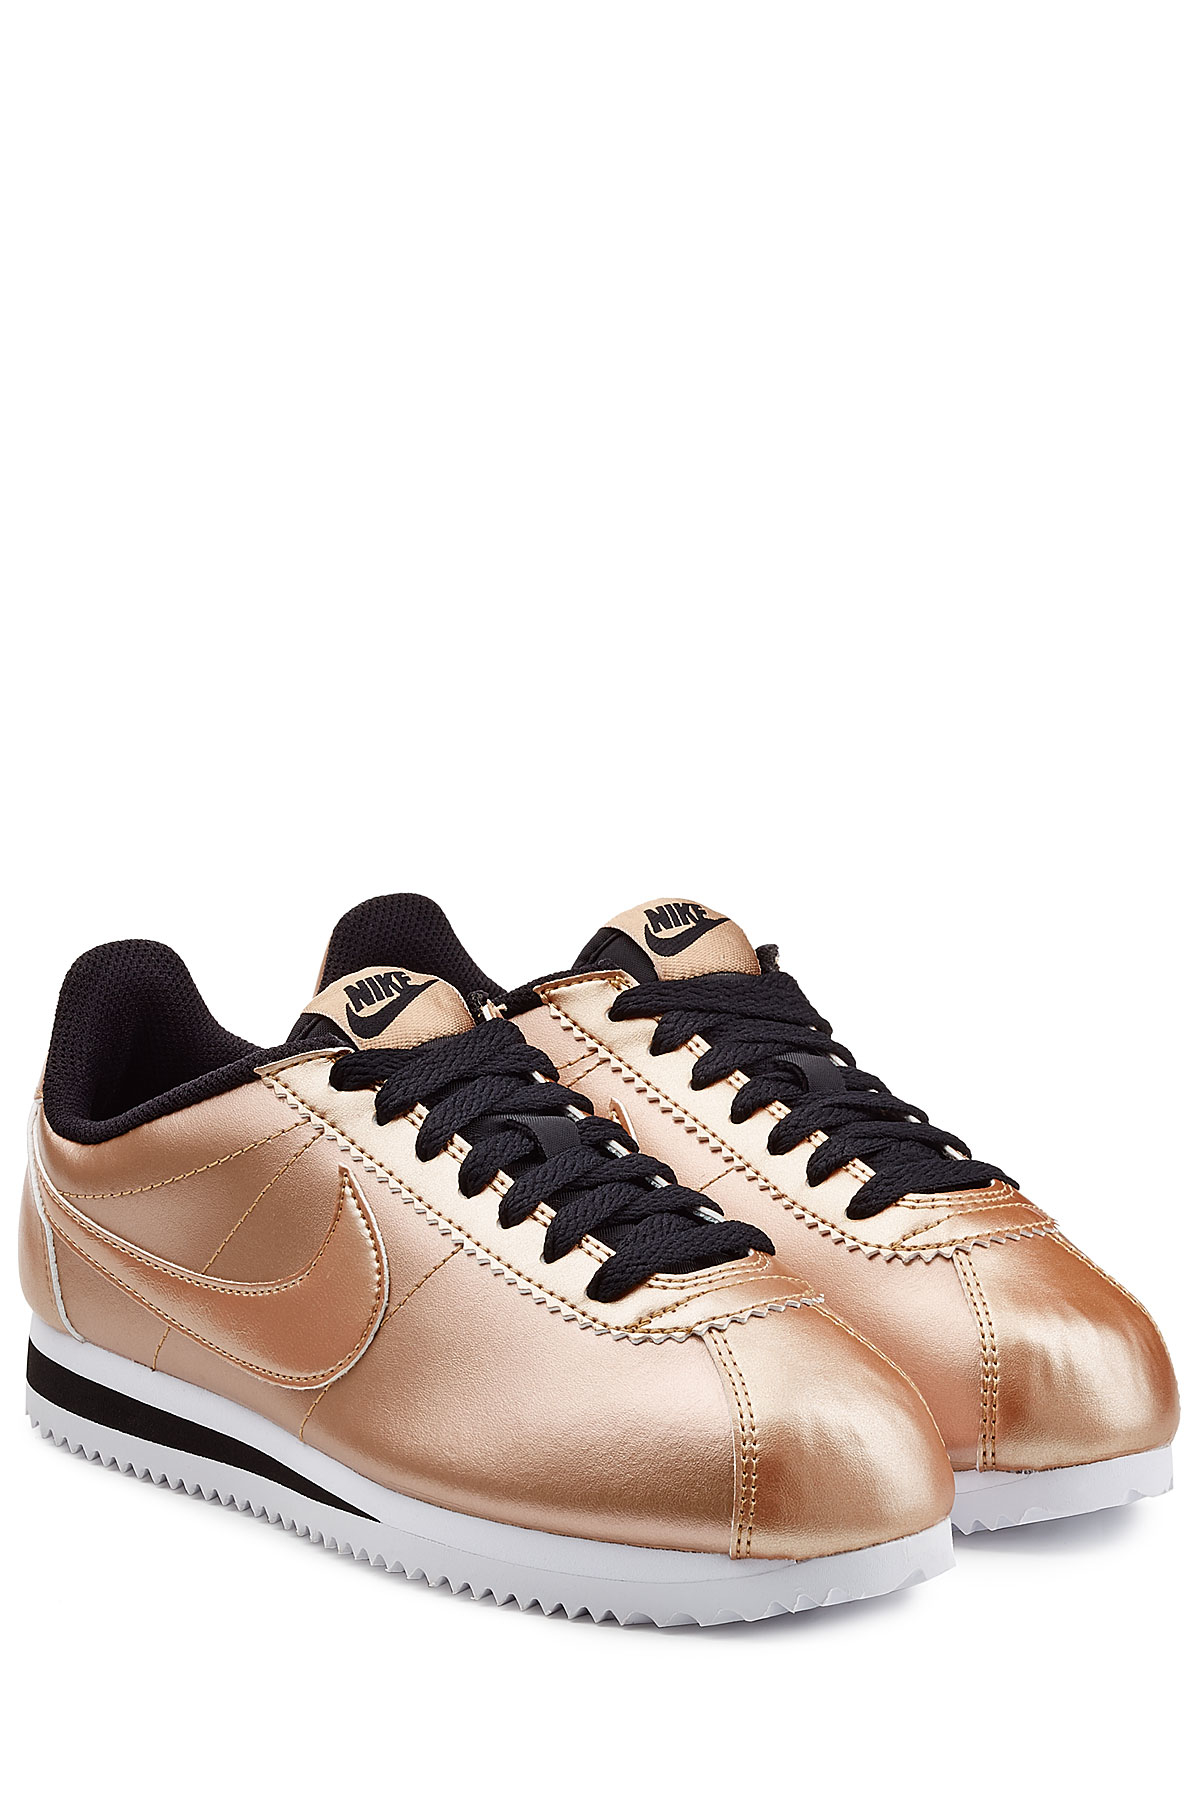 Lyst Nike Classic Cortez Metallic Leather Sneakers Rose In Pink